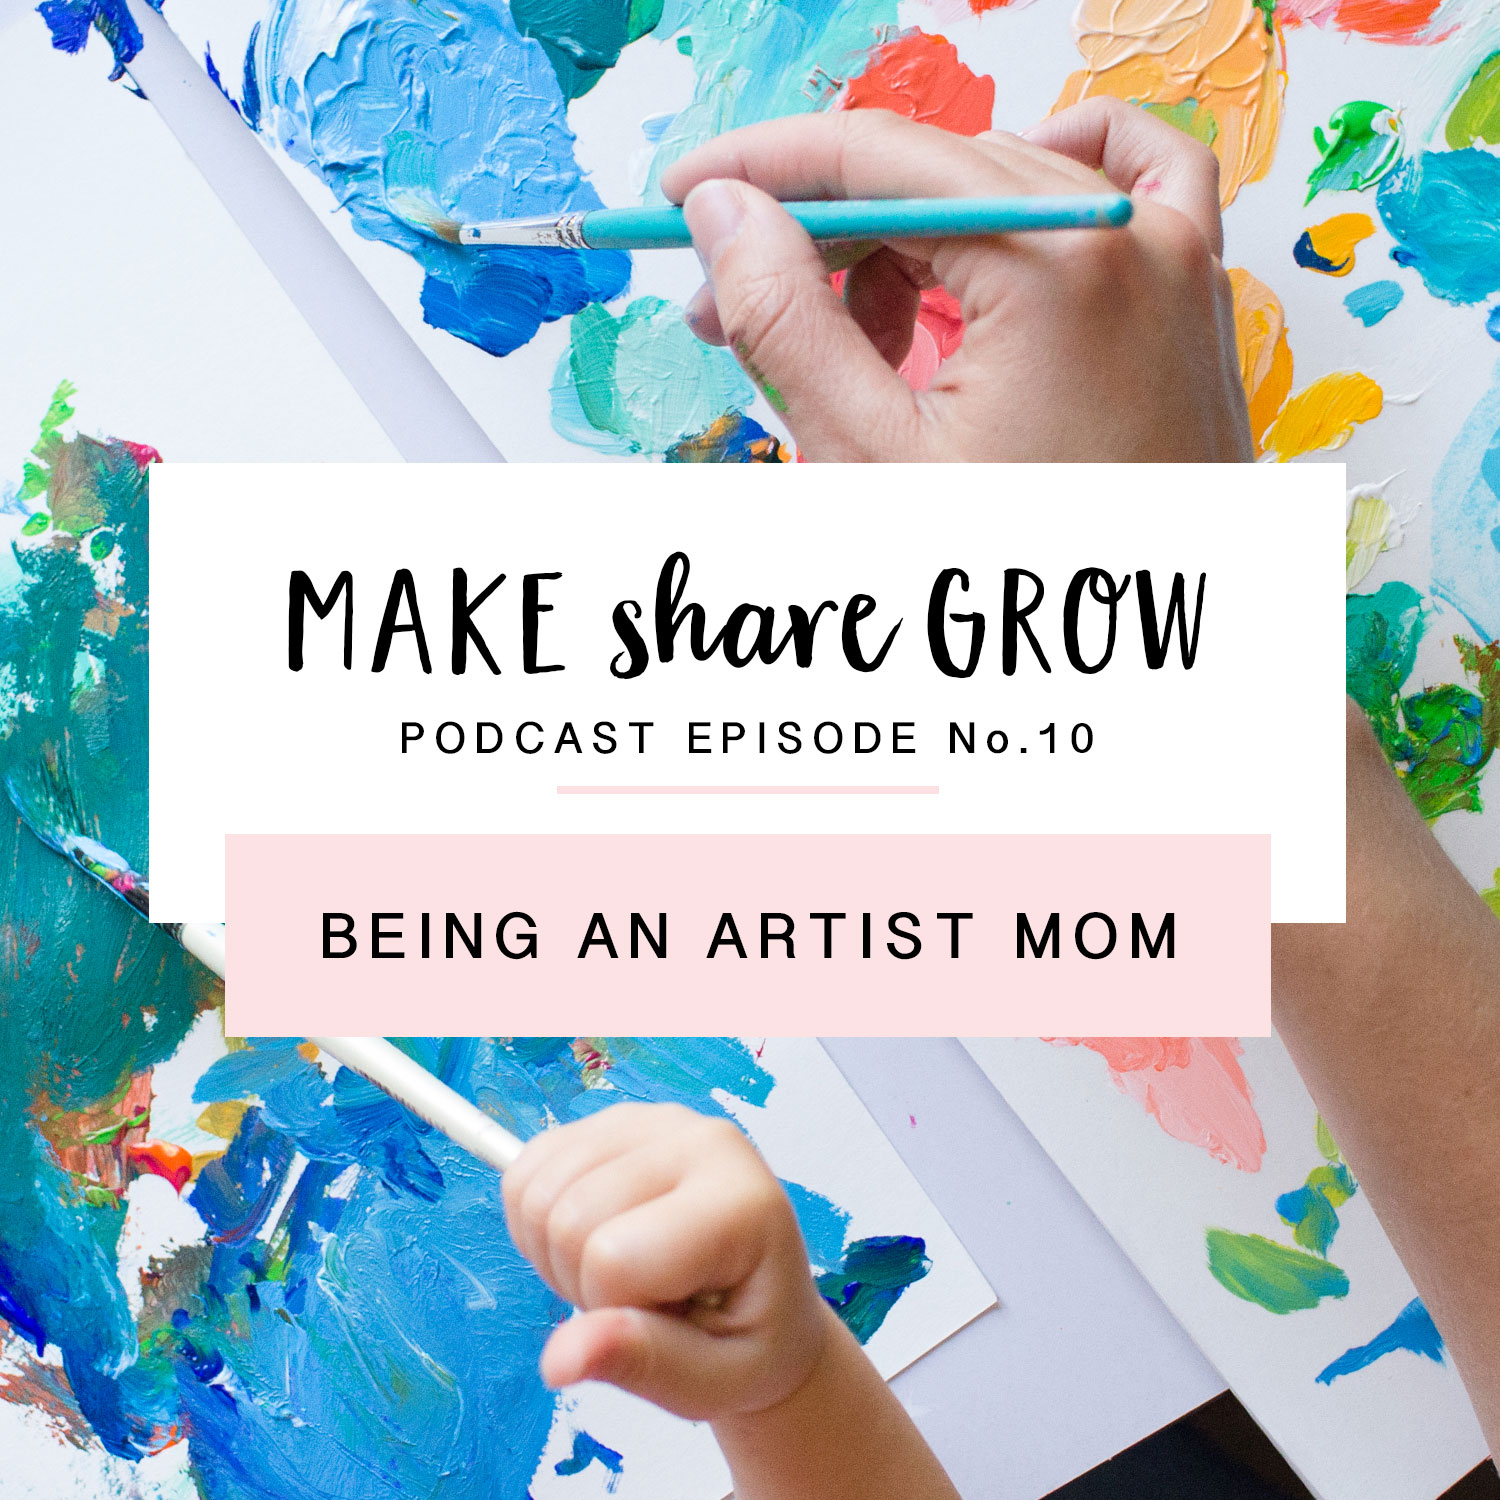 Make-Share-Grow-Podcast-Episode-10-art.jpg